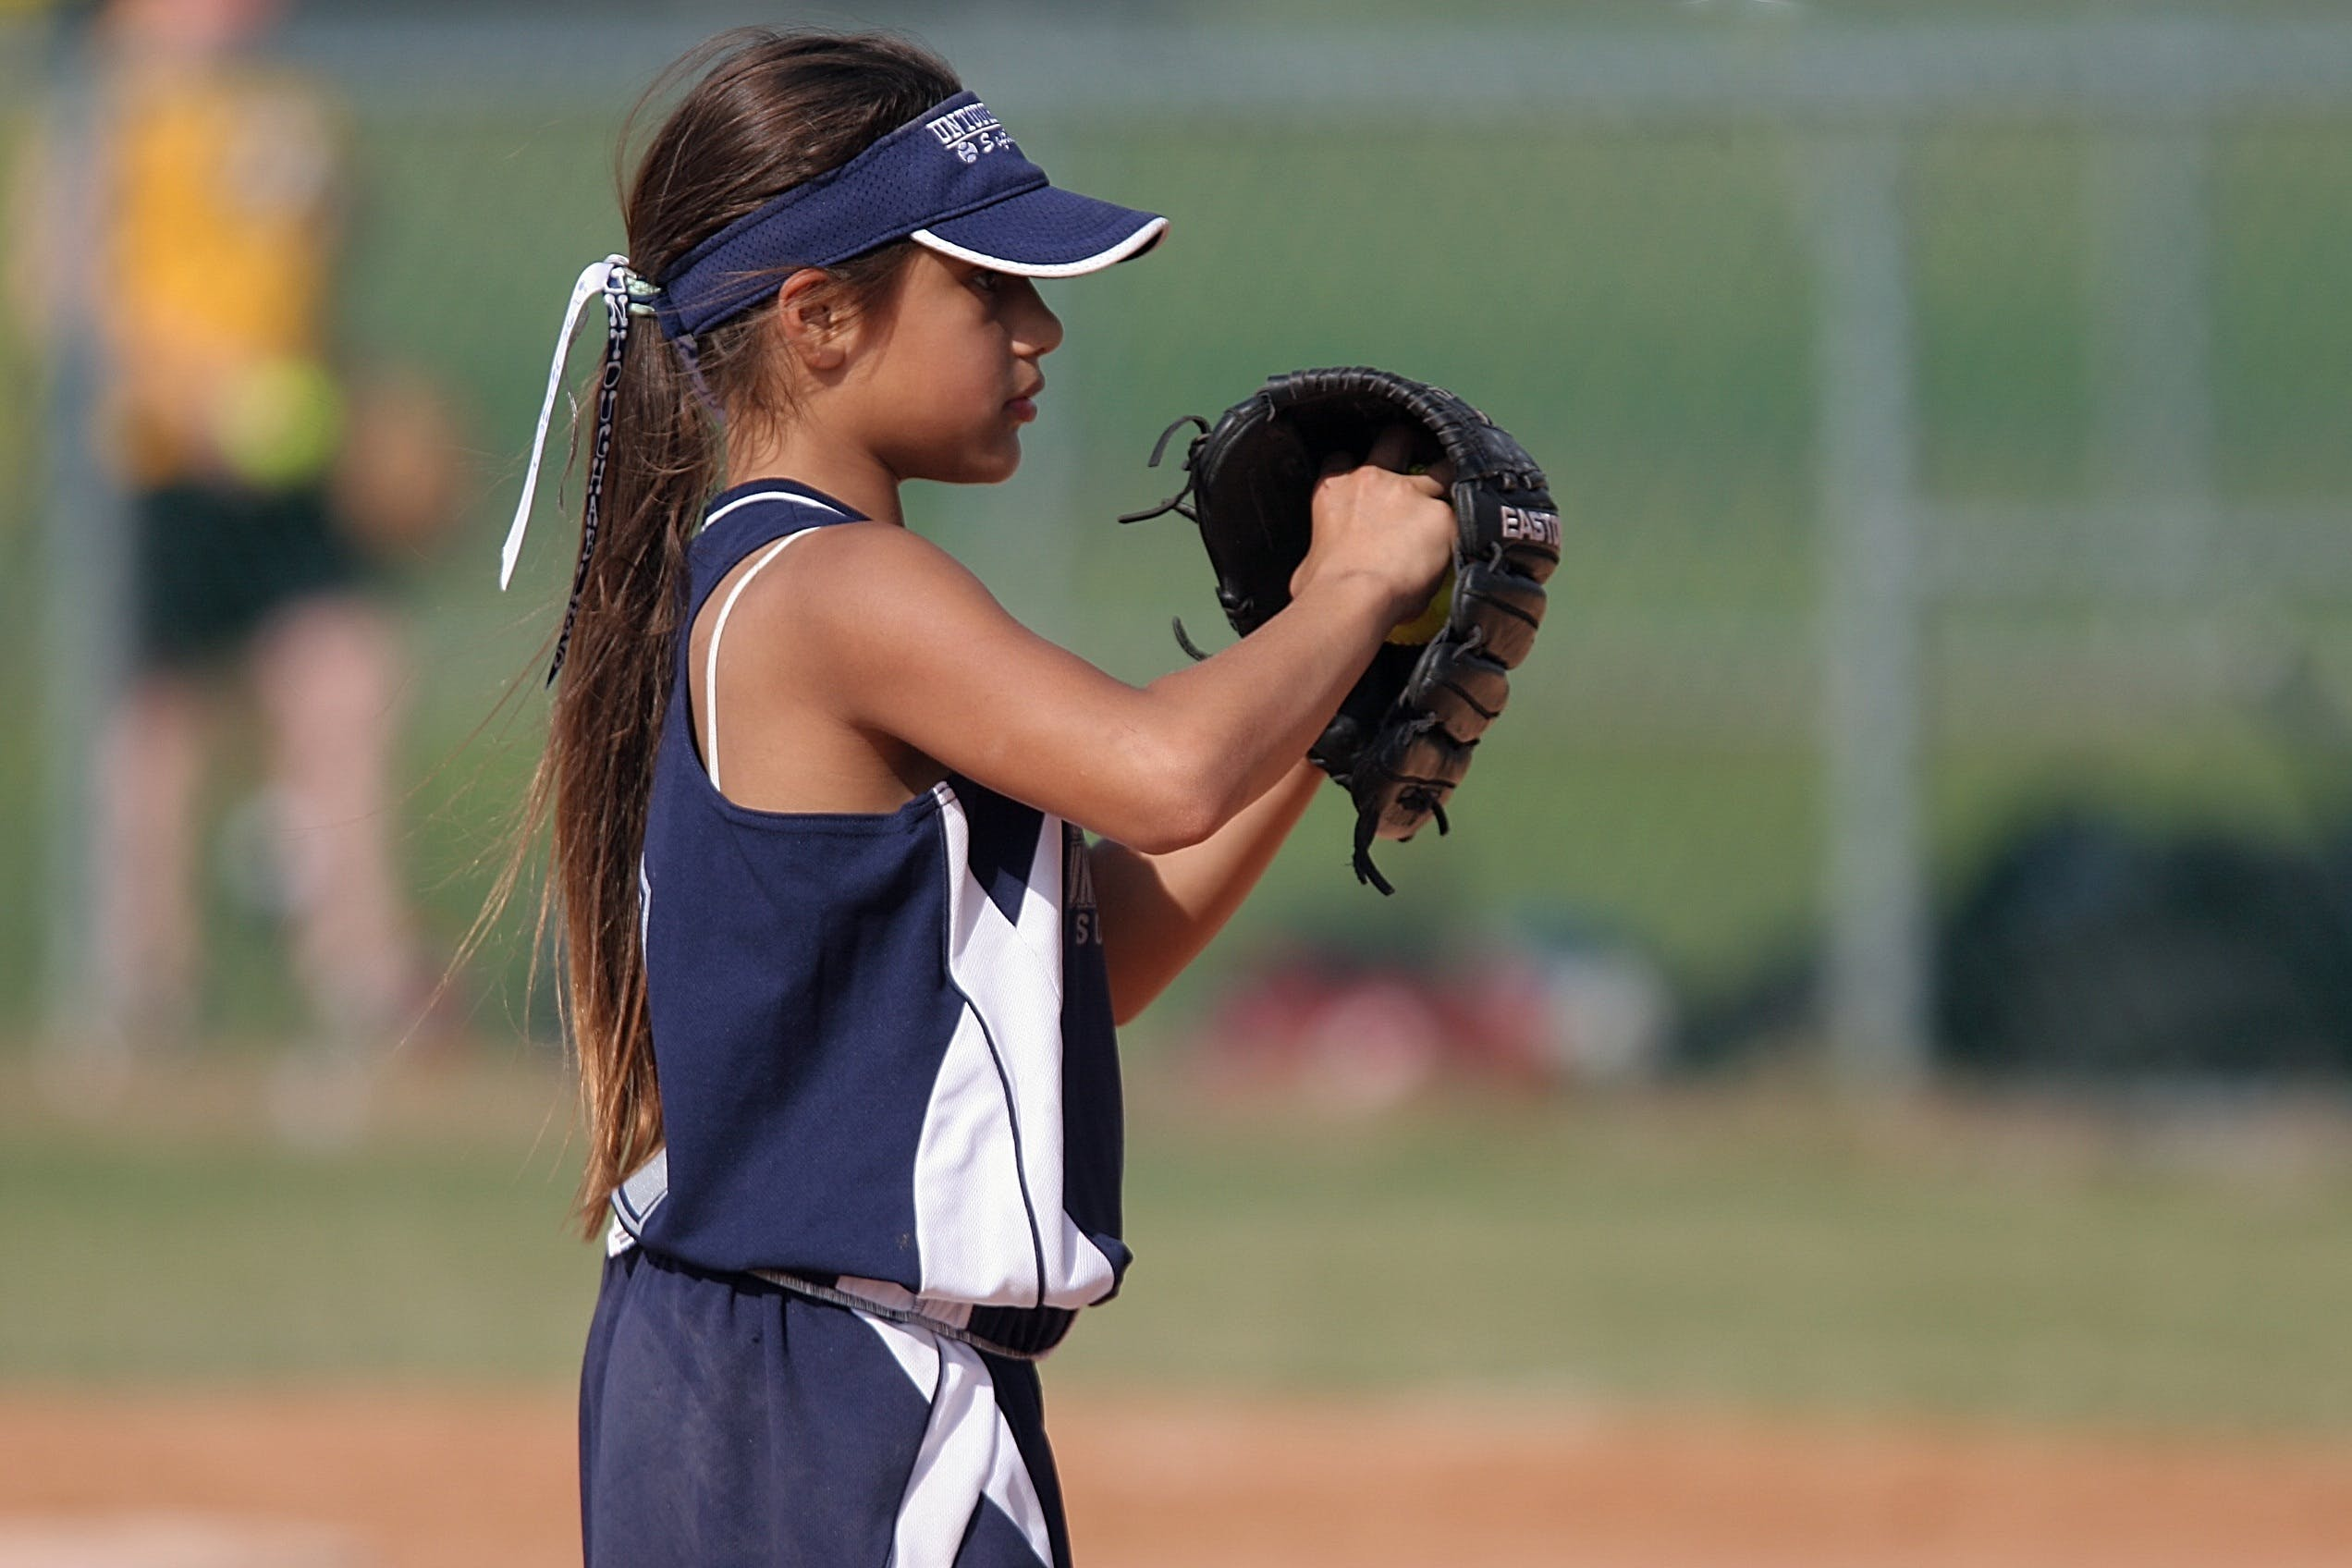 Girl Playing Baseball